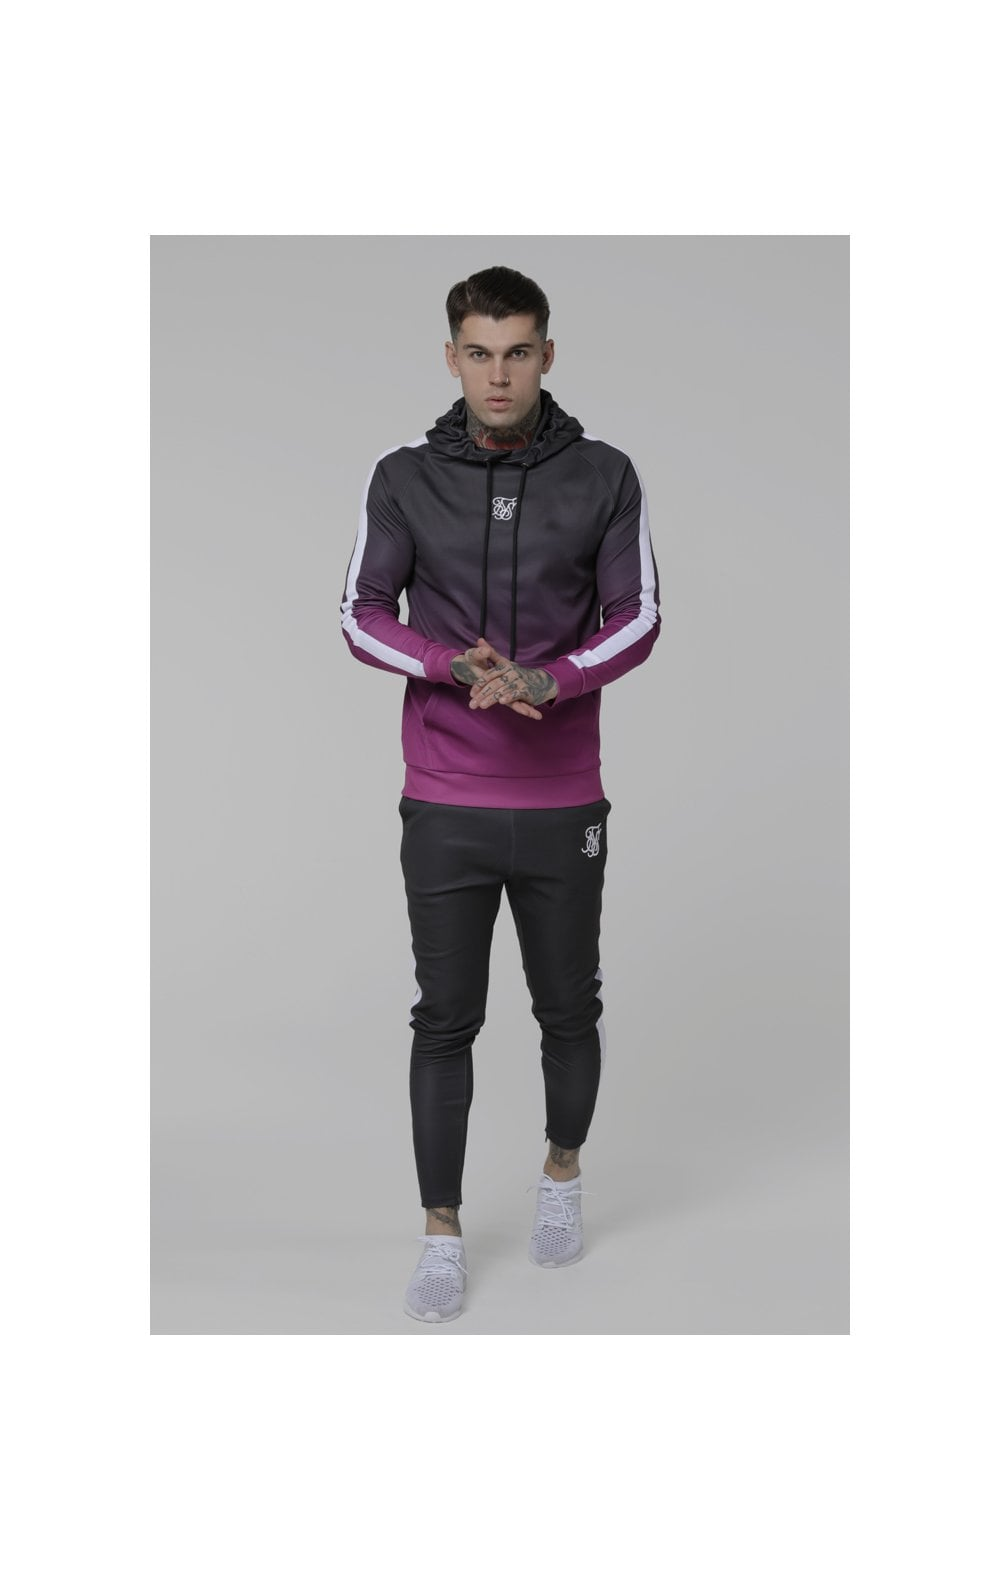 Load image into Gallery viewer, SikSilk Vapour Fade Overhead Hoodie - Grey & Pink (3)